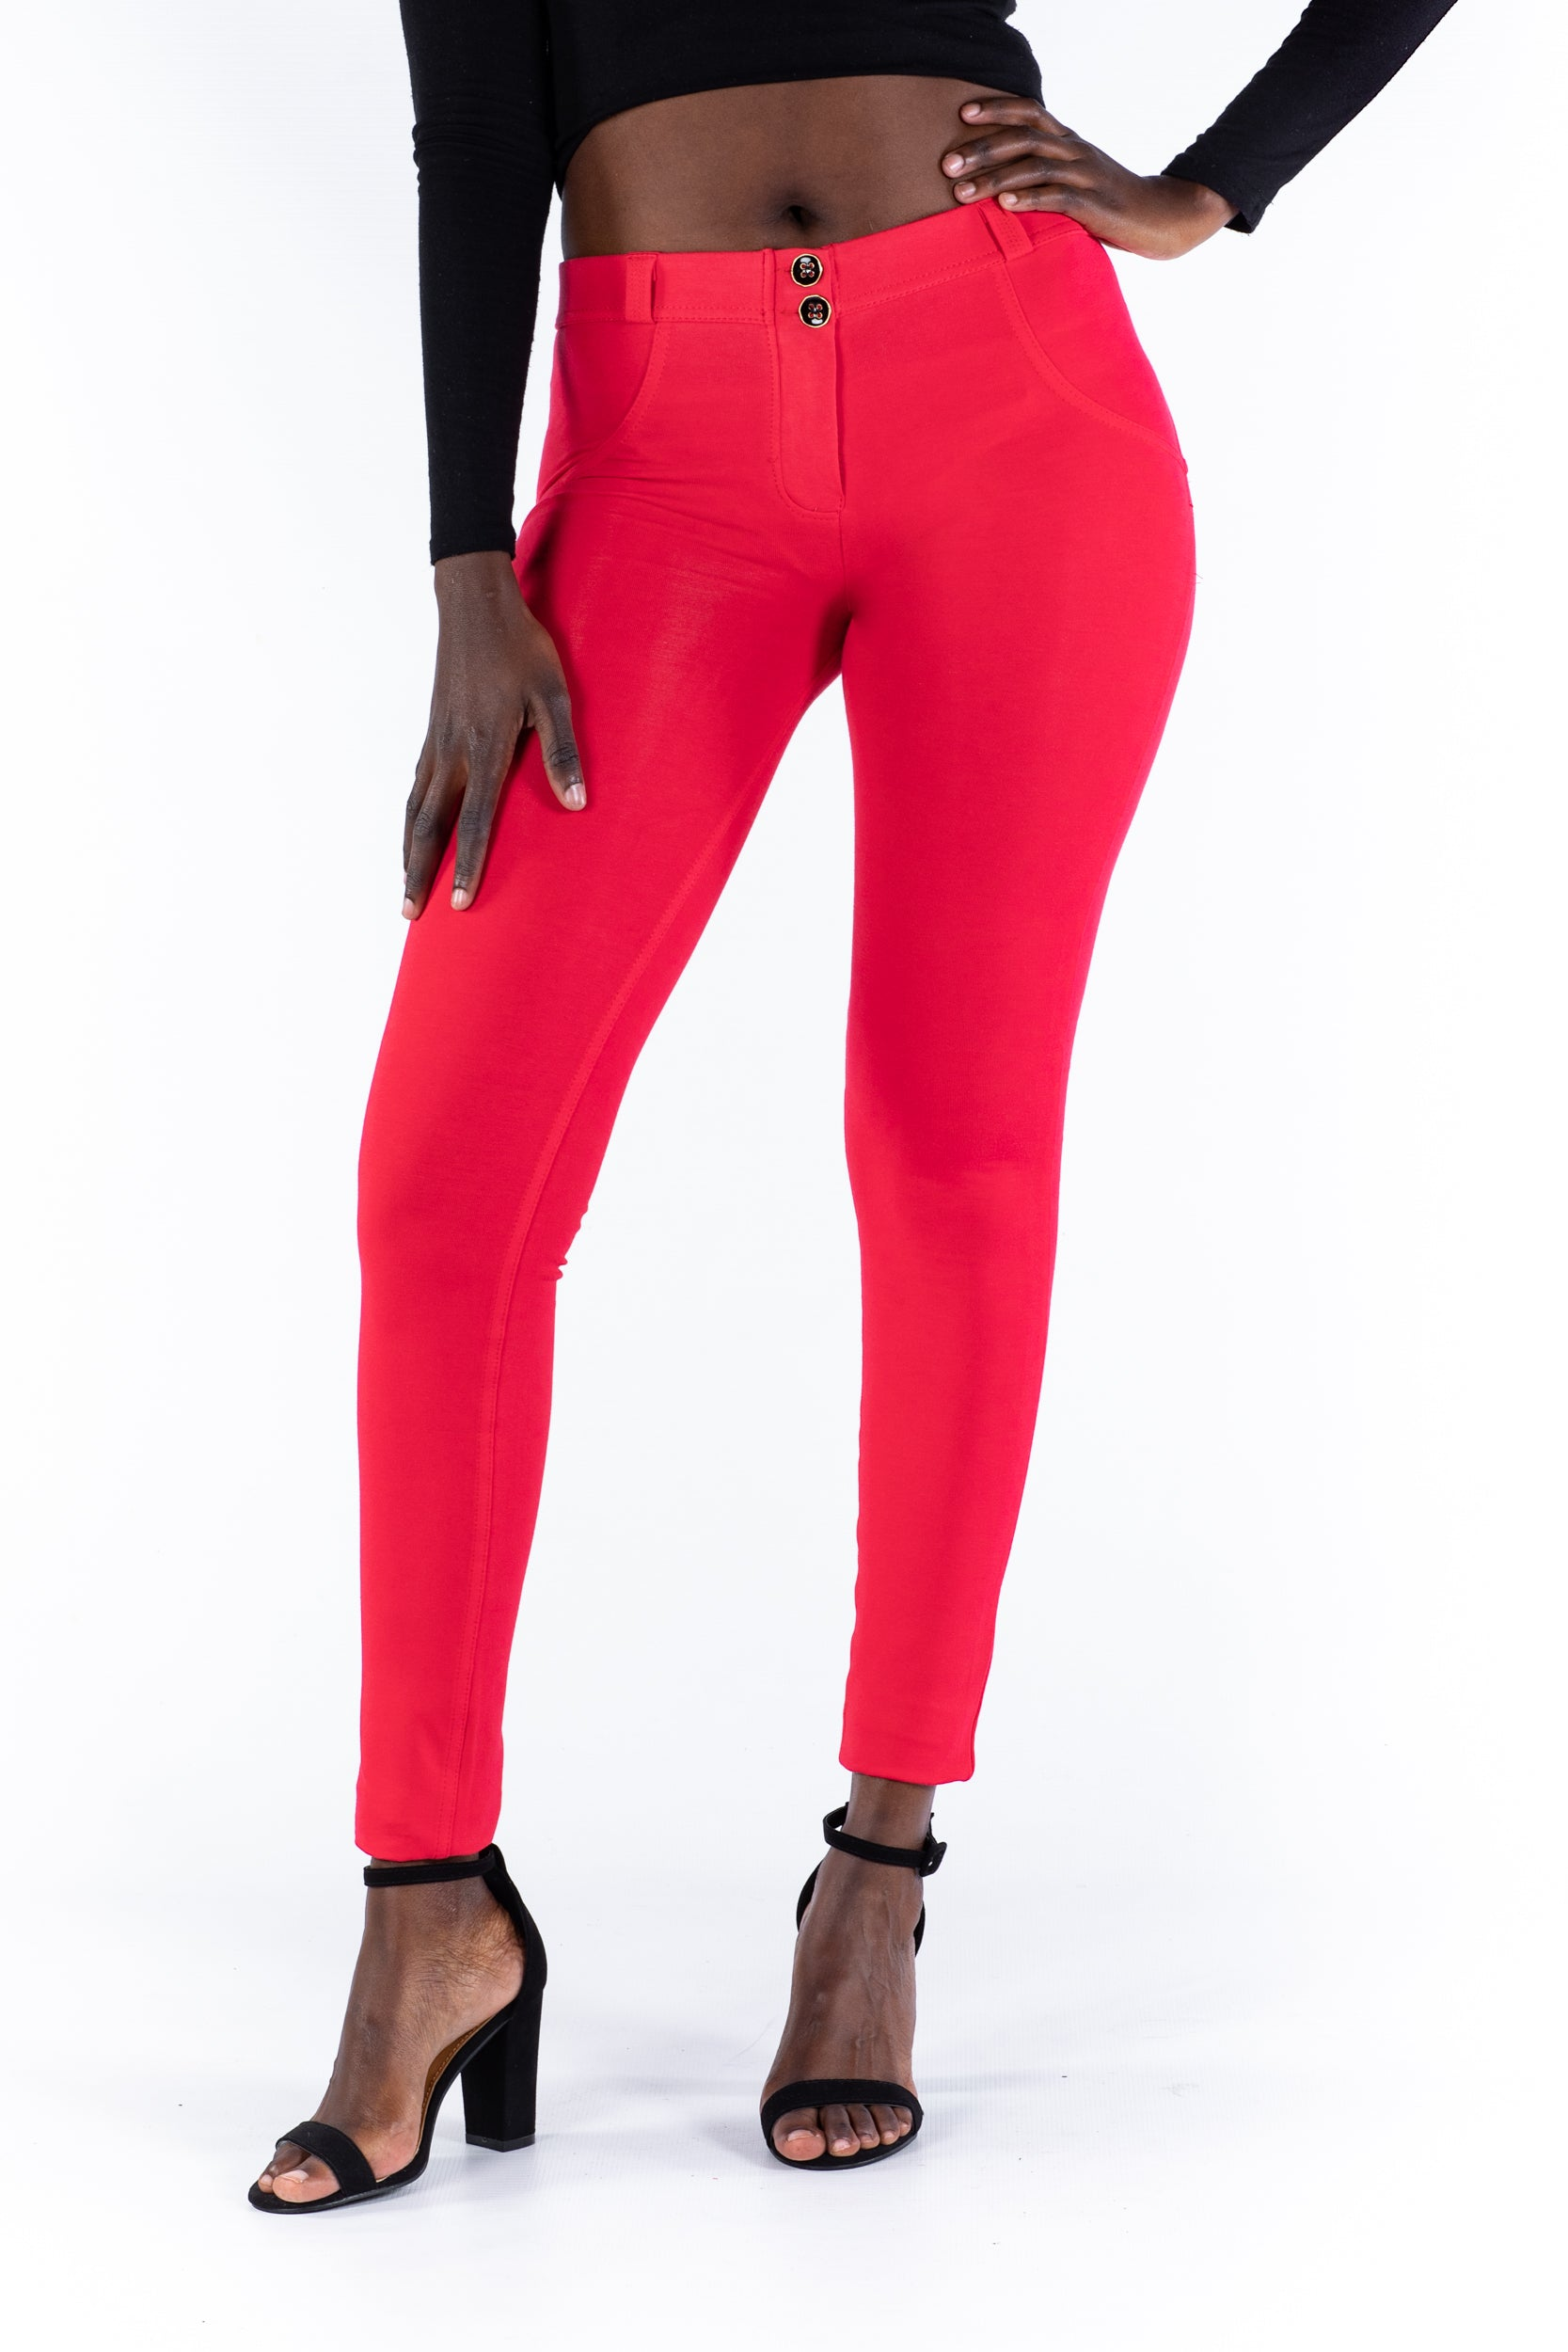 Image of Butt lifting Jeggings - Coral red